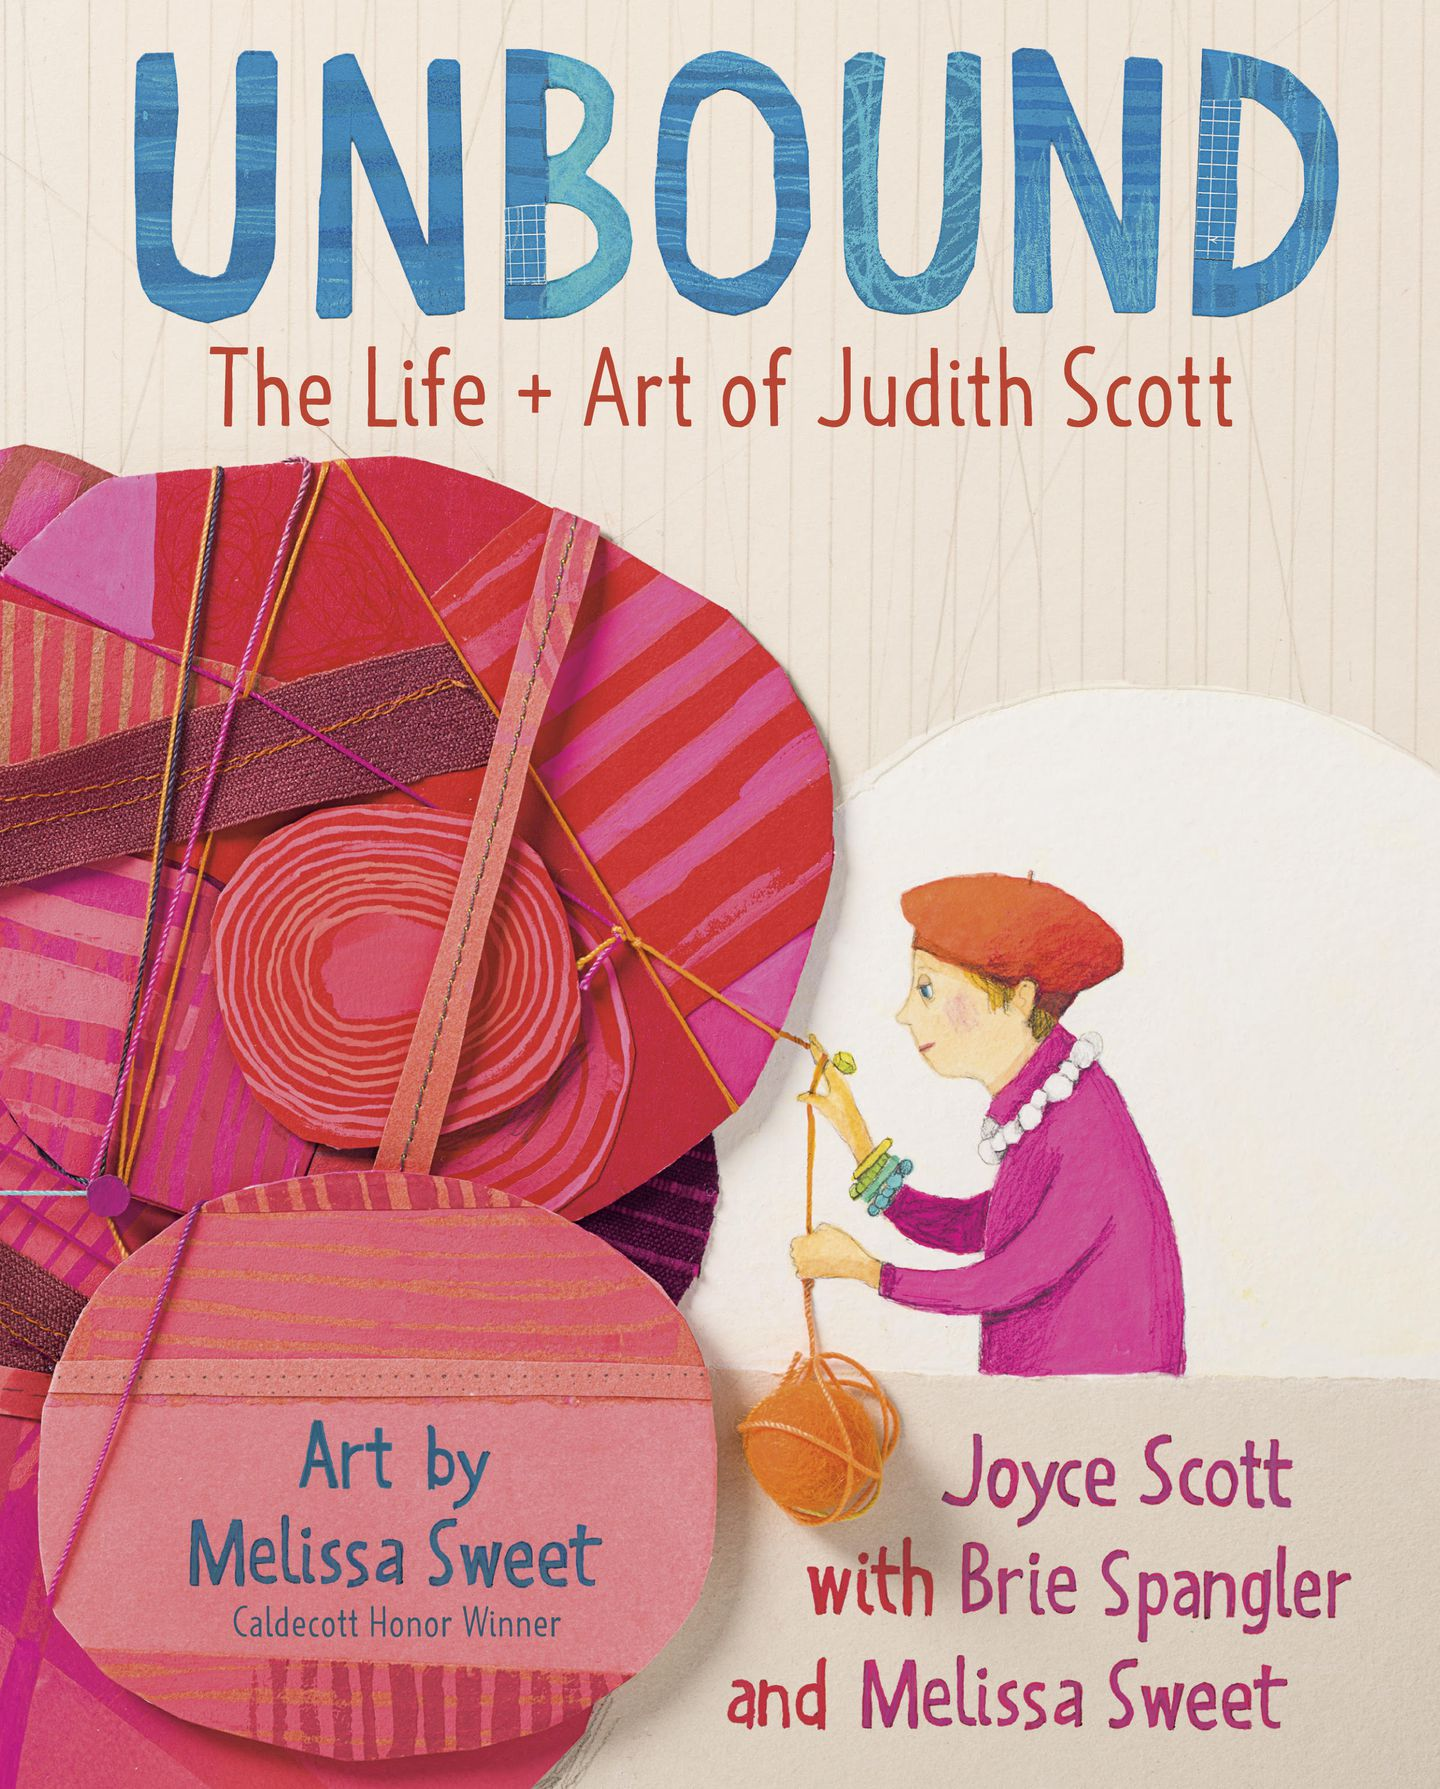 Judith Scott Defied Stereotypes About Down Syndrome and Became a Famous Sculptor. A Poignant New Children's Book Tells Her Story   Artnet News